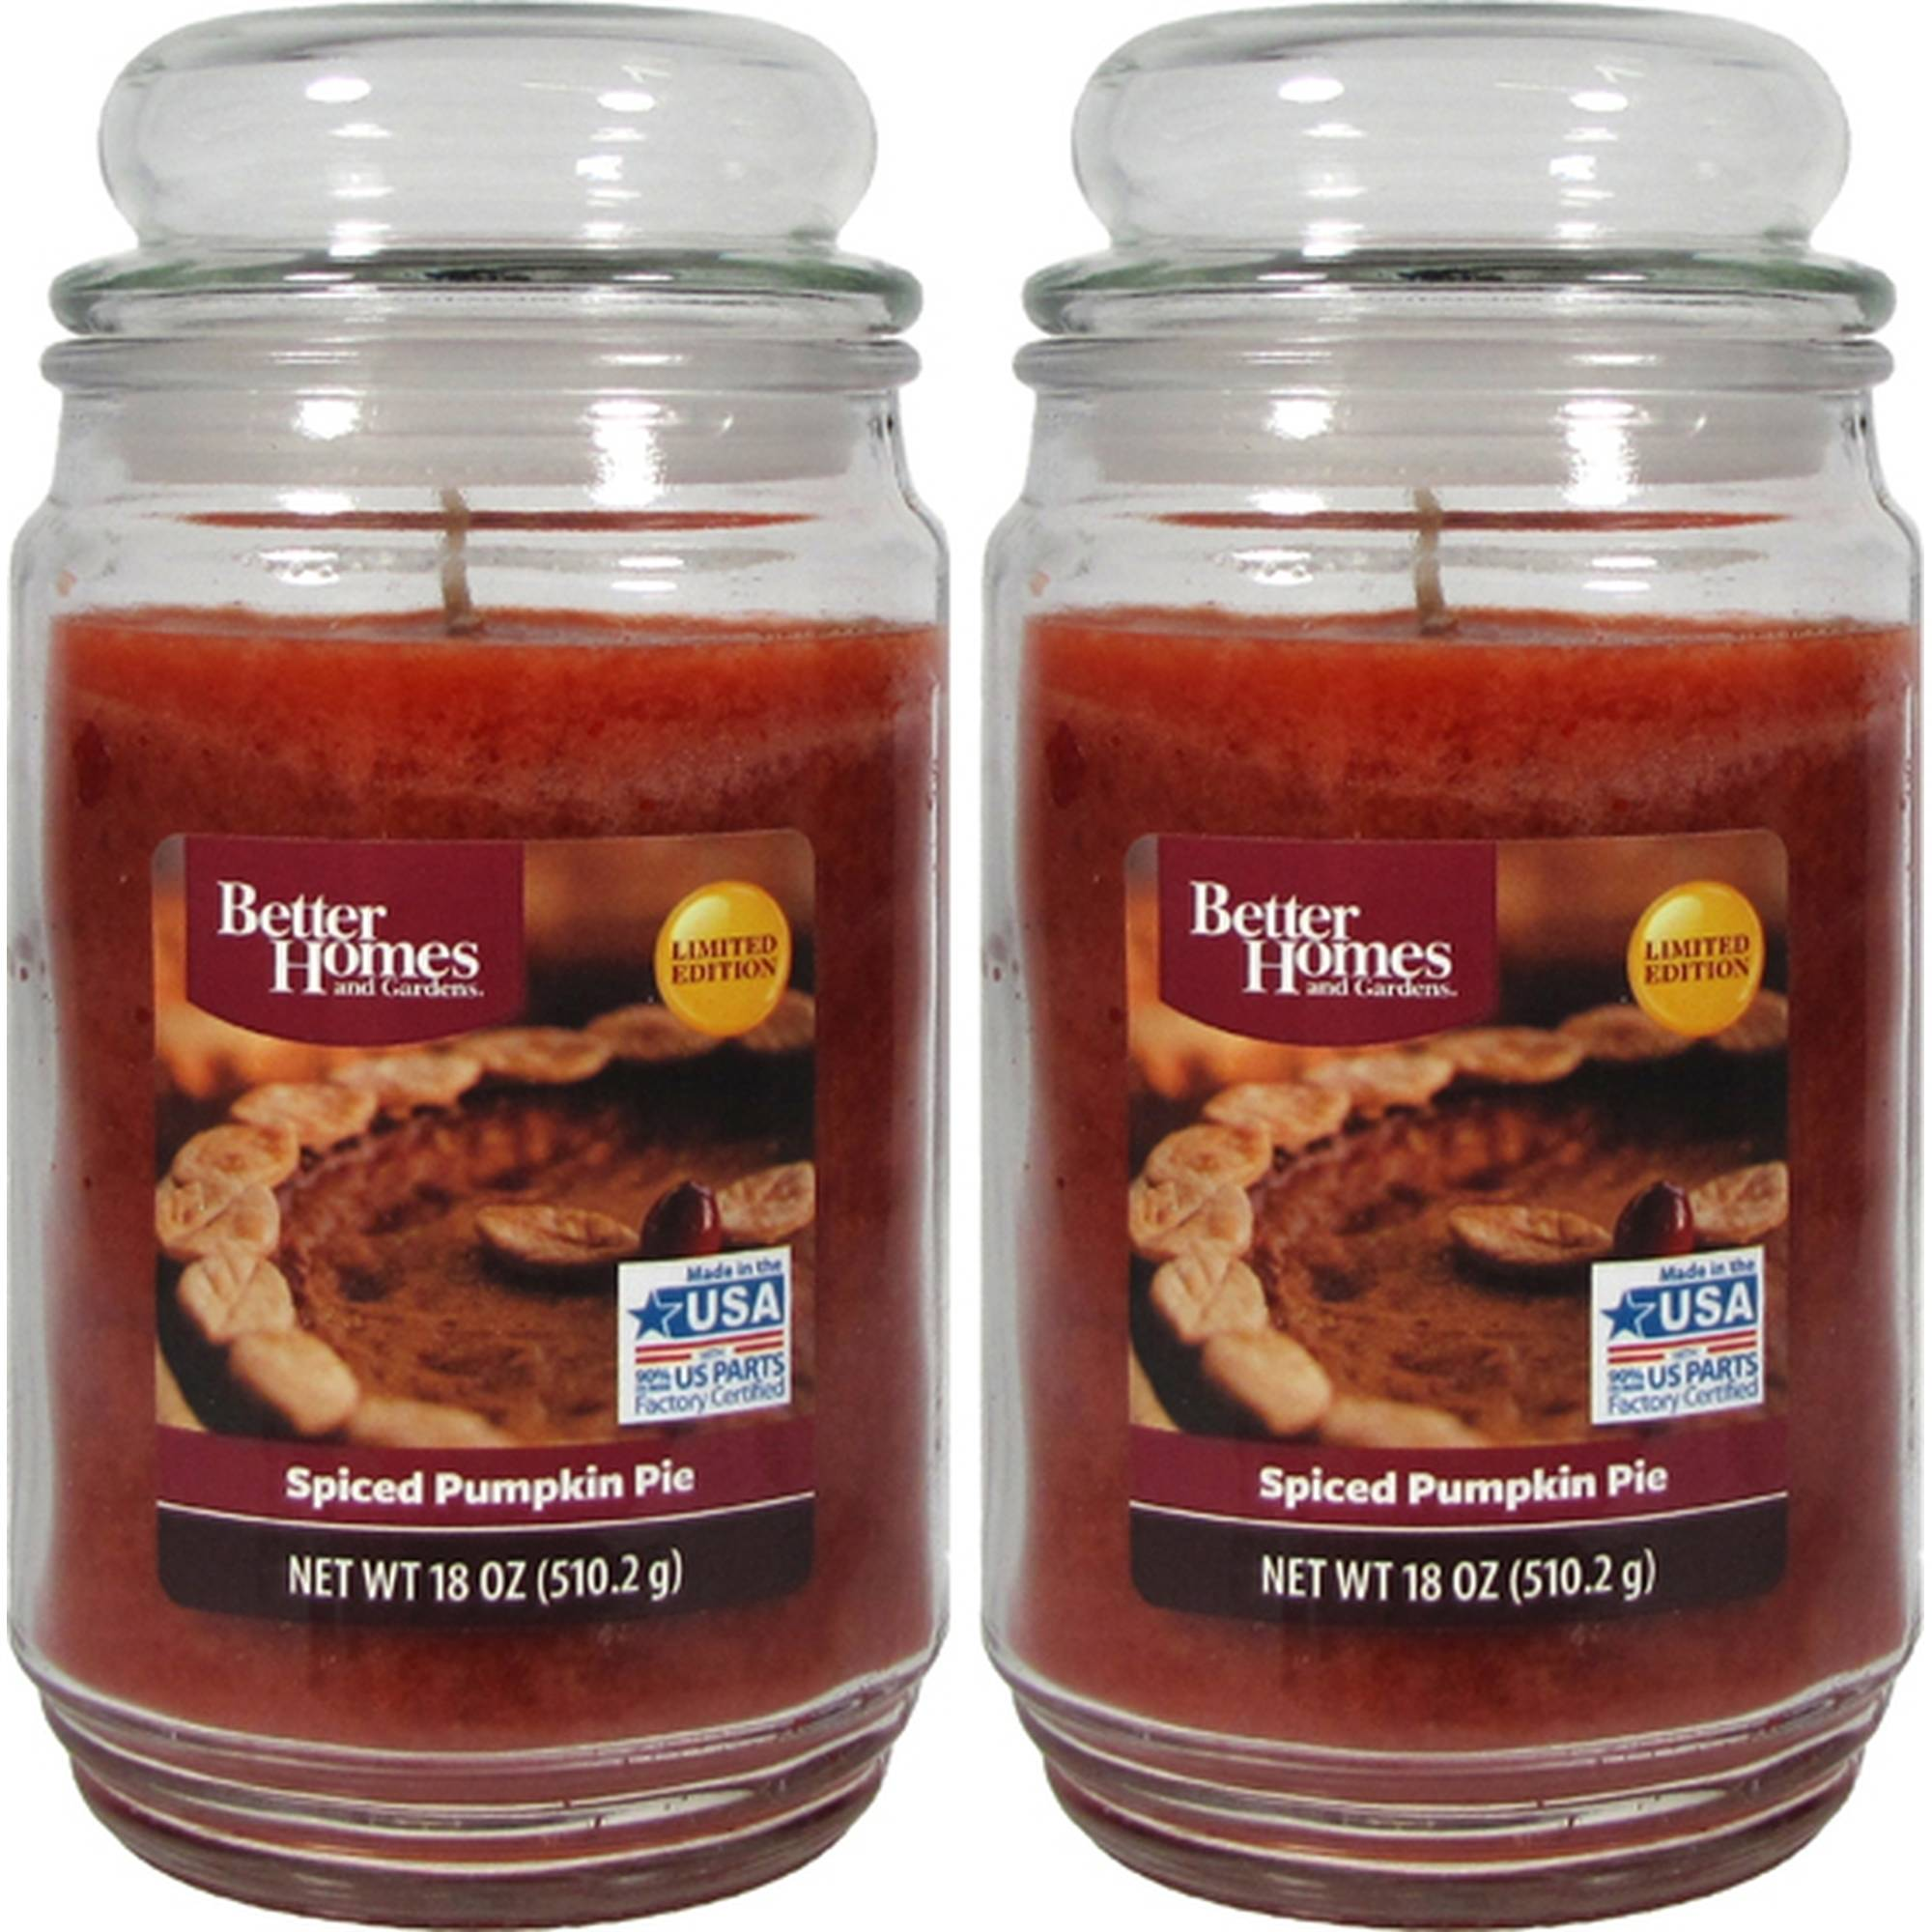 Better Homes And Gardens 18oz 2 pk. Spiced Pumpkin Pie